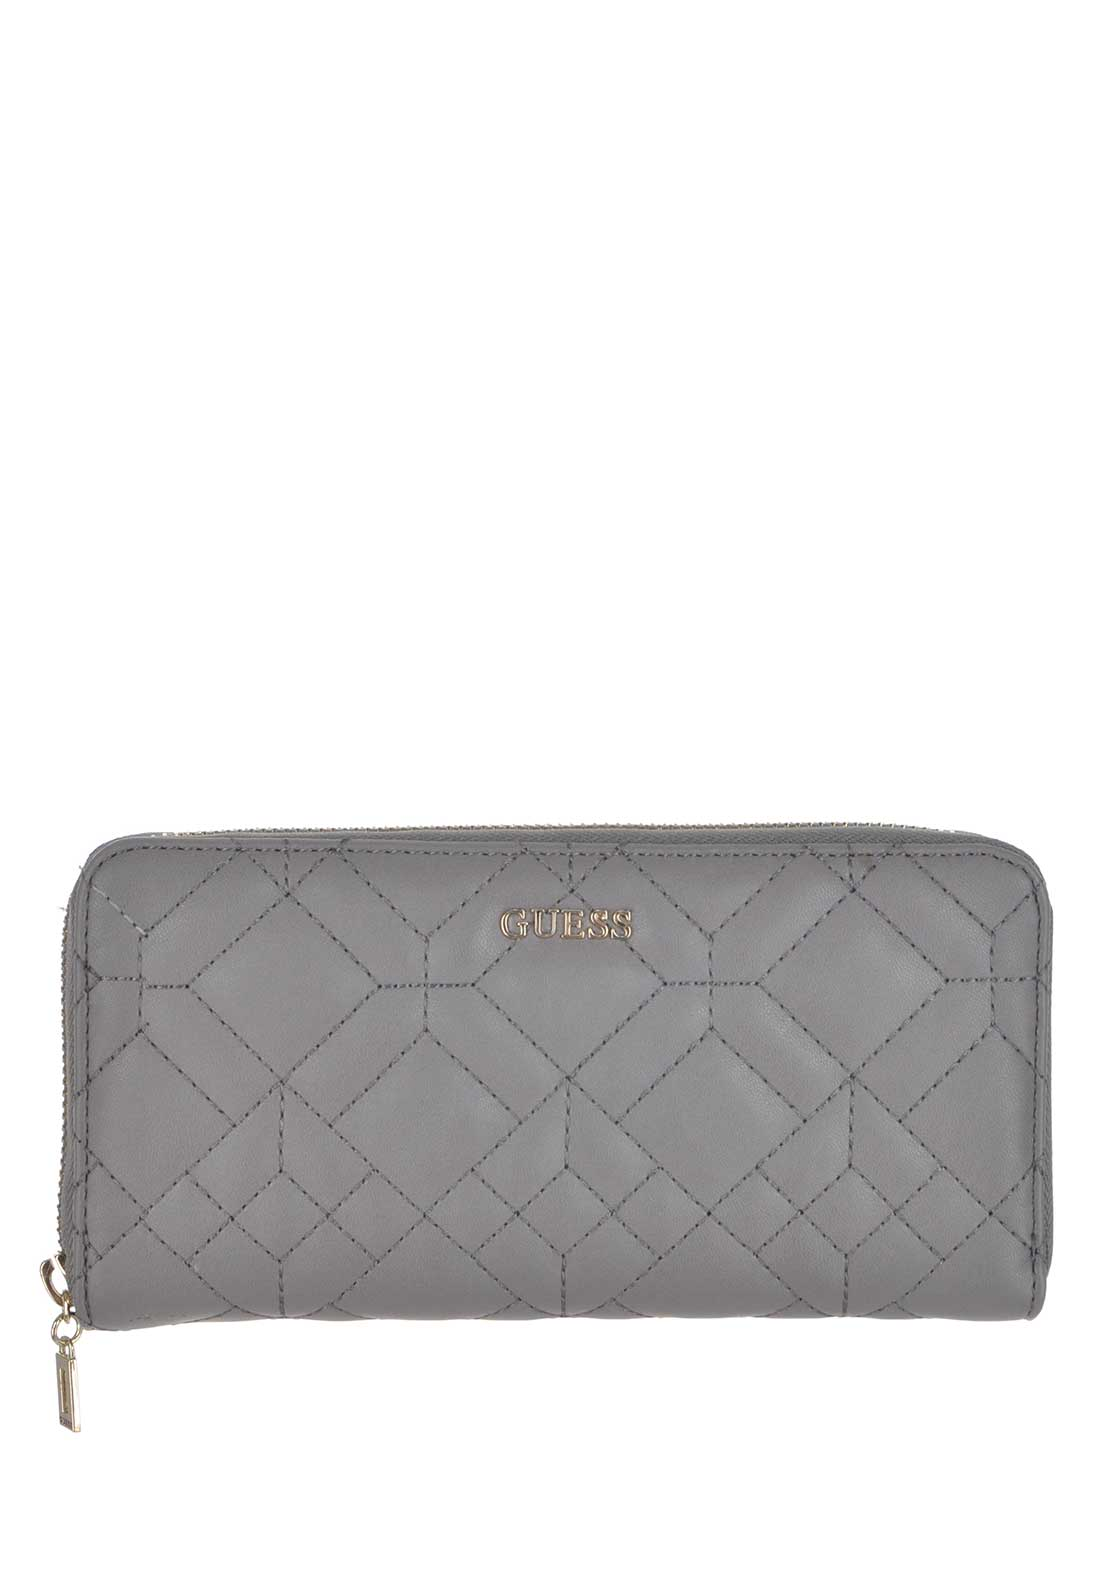 Guess Womens Ines Large Zip Around Wallet, Smoke